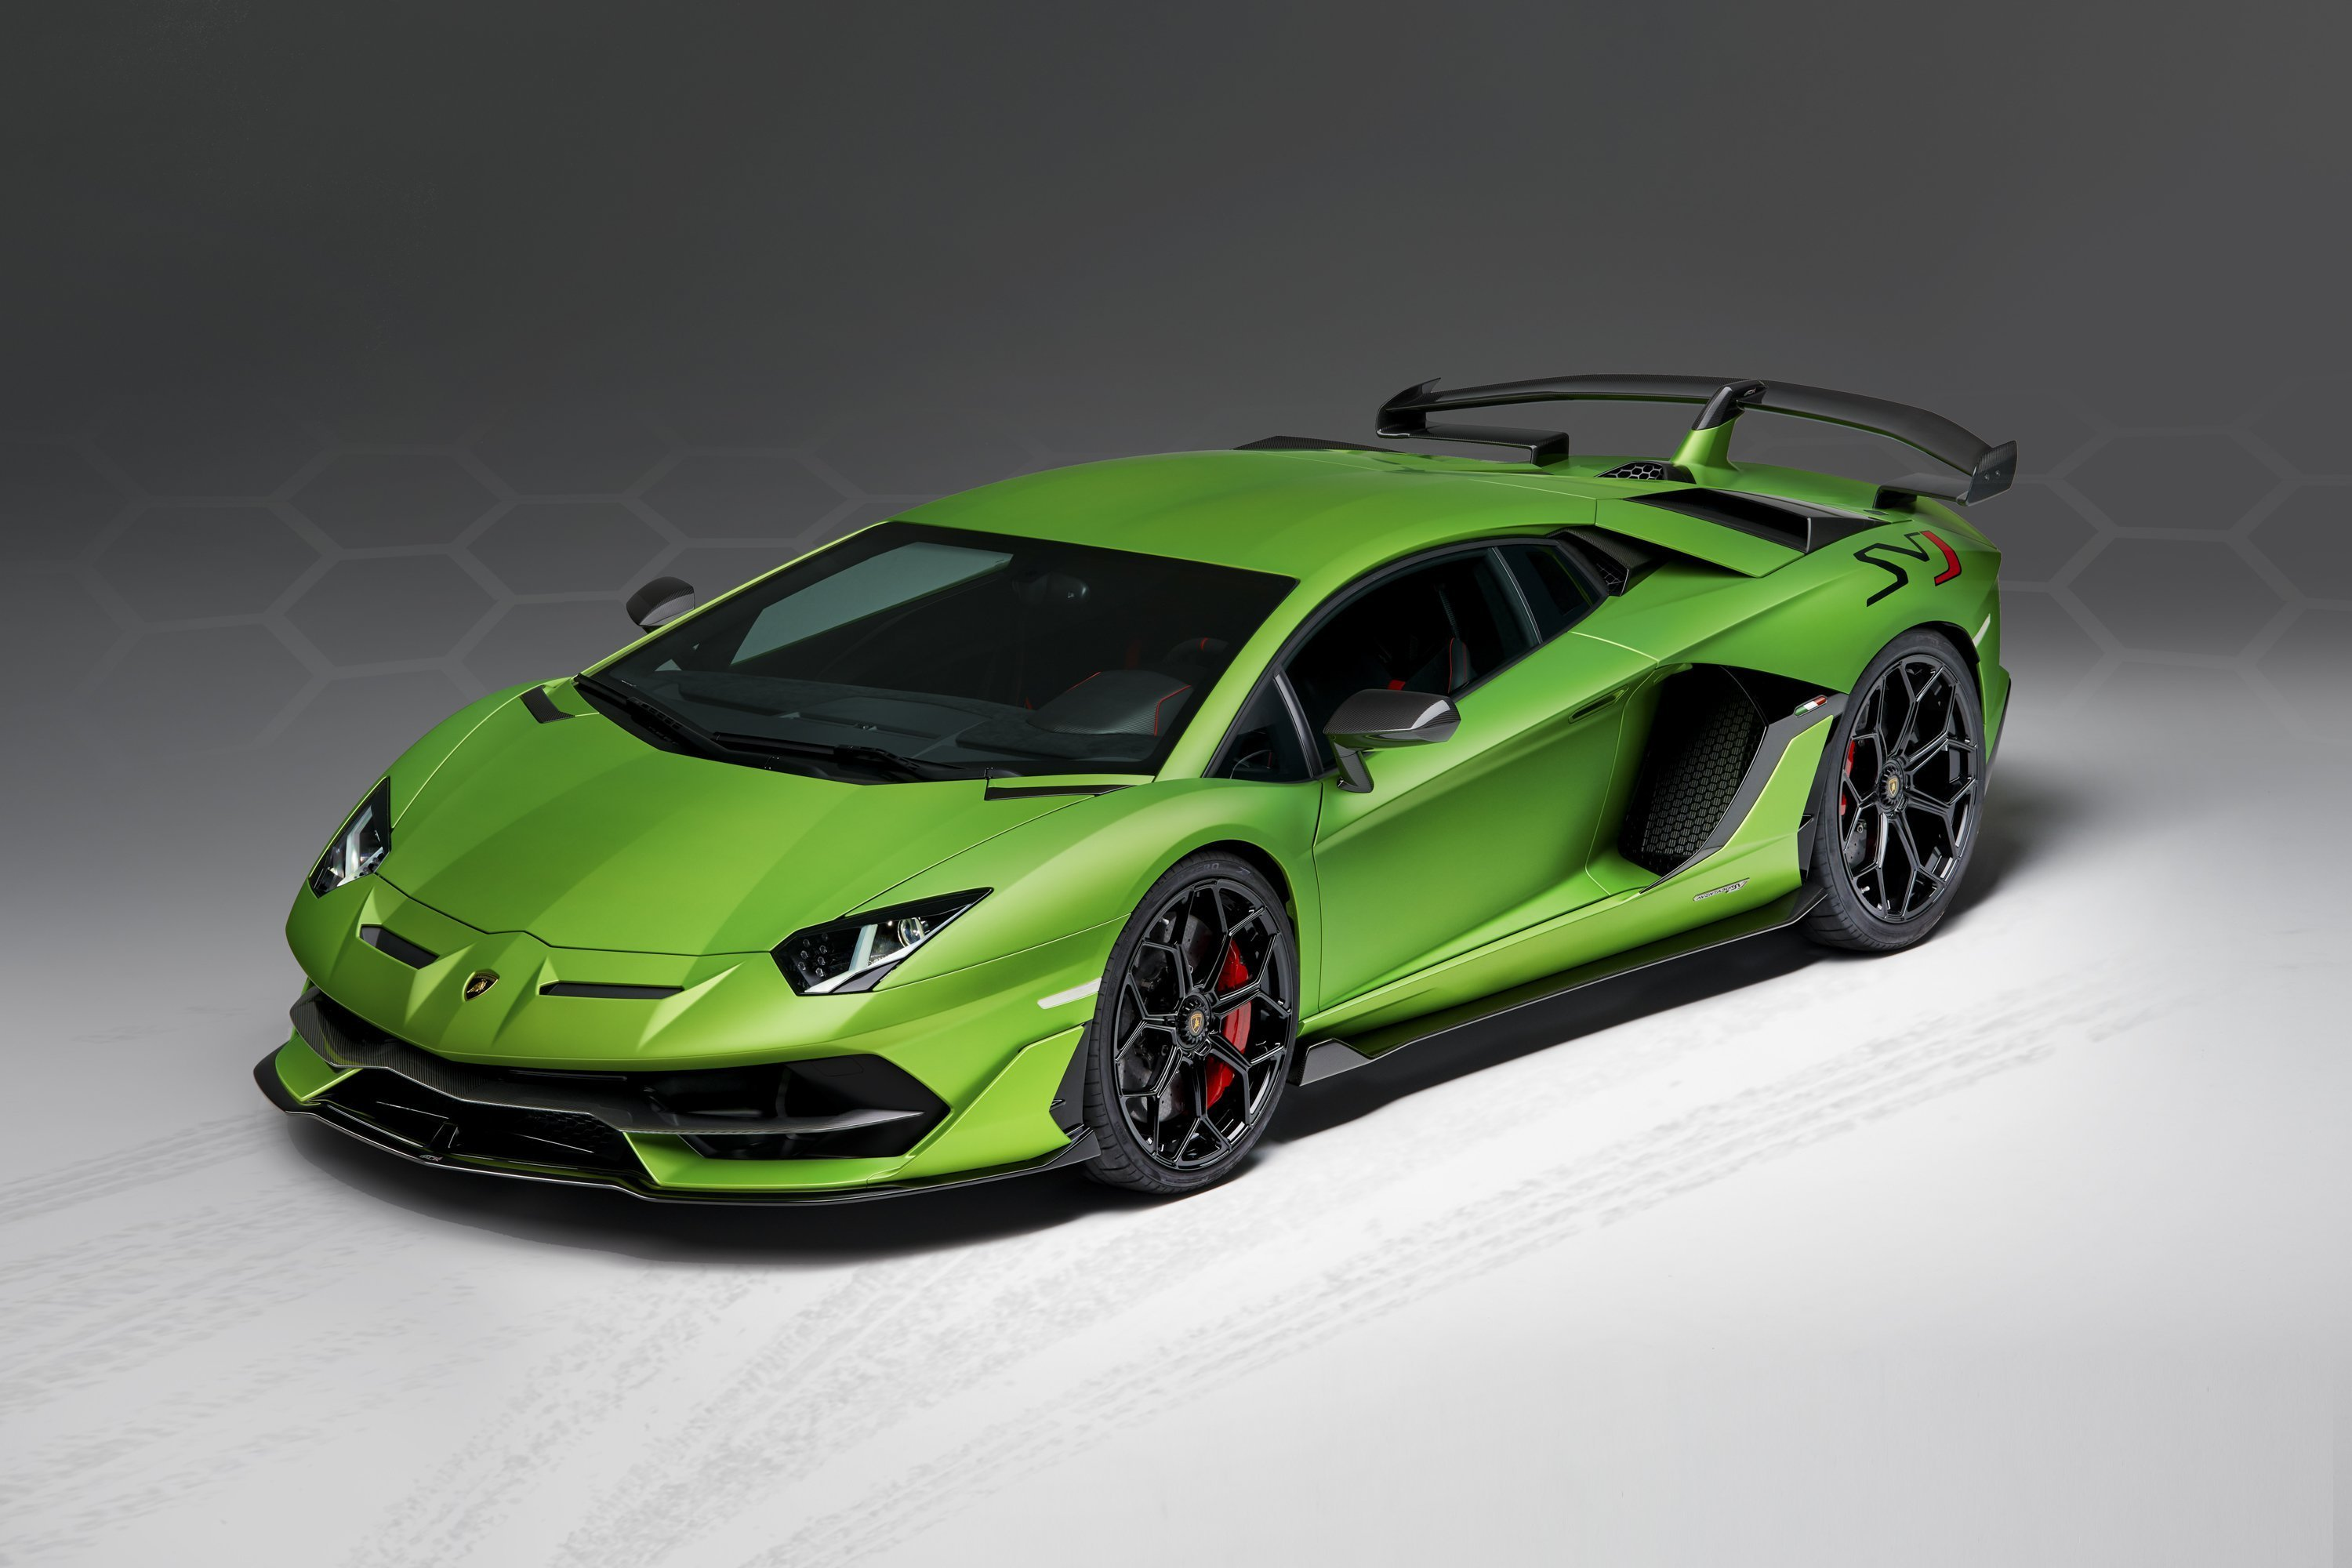 New 2019 Lamborghini Aventador Performante Top Speed On This Month